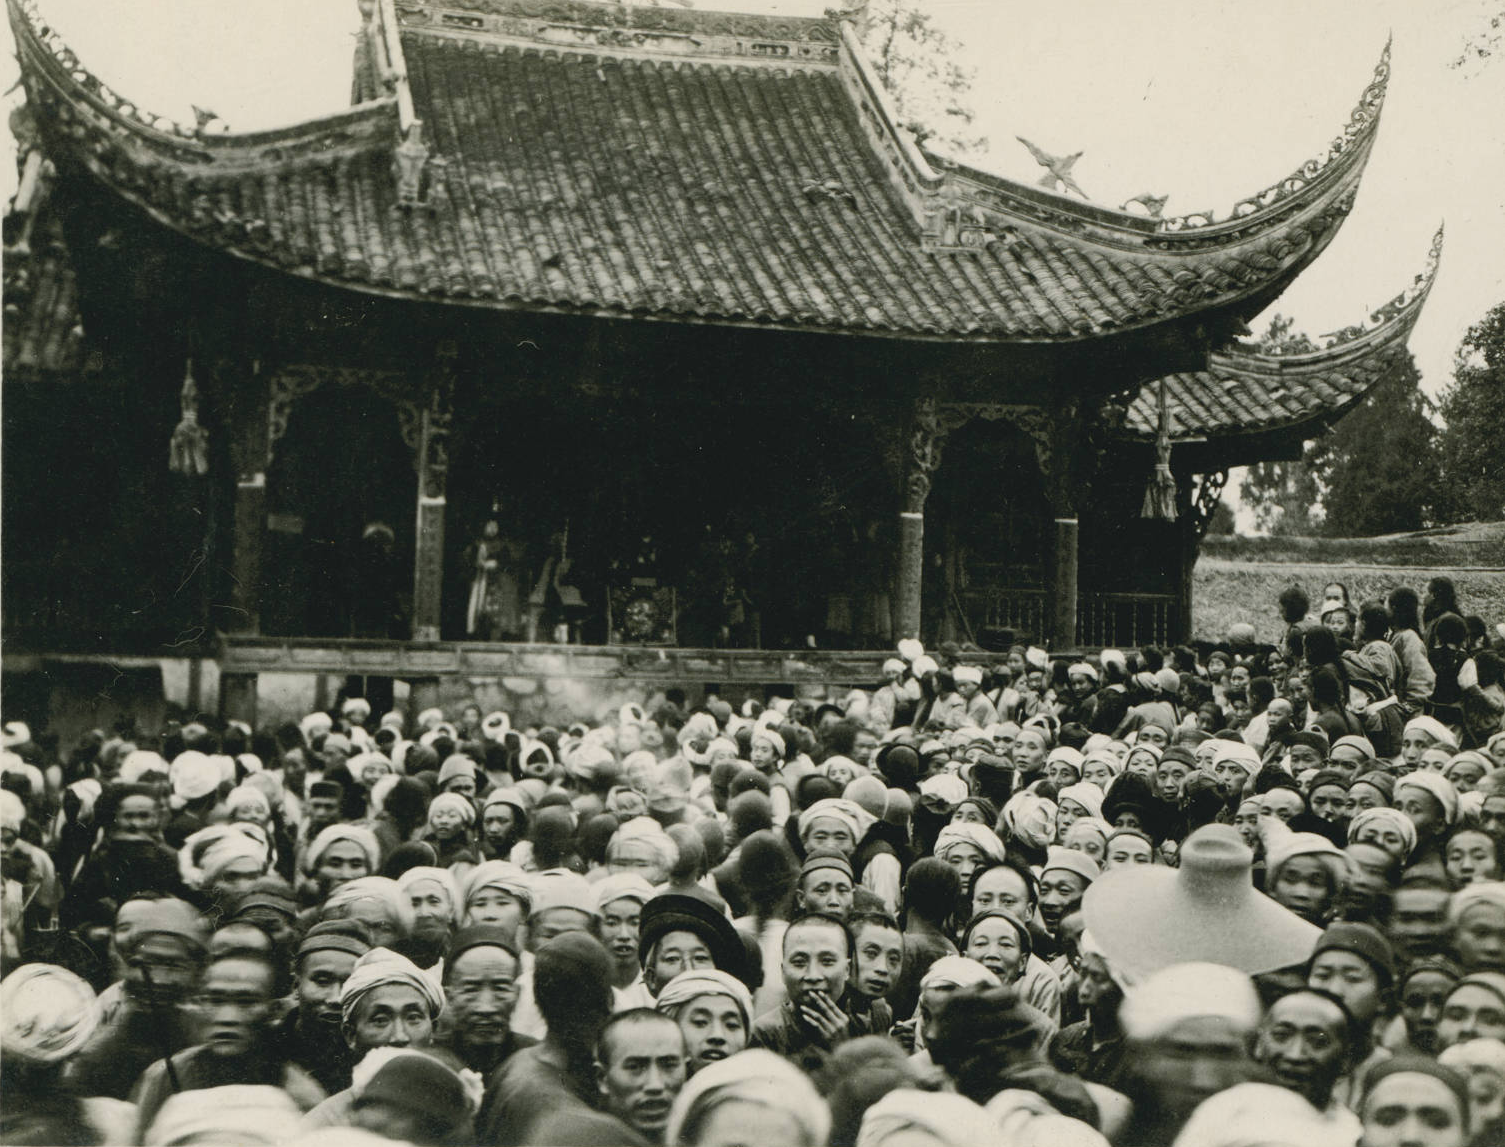 Open air theater at Hsing Chang, 1909-04